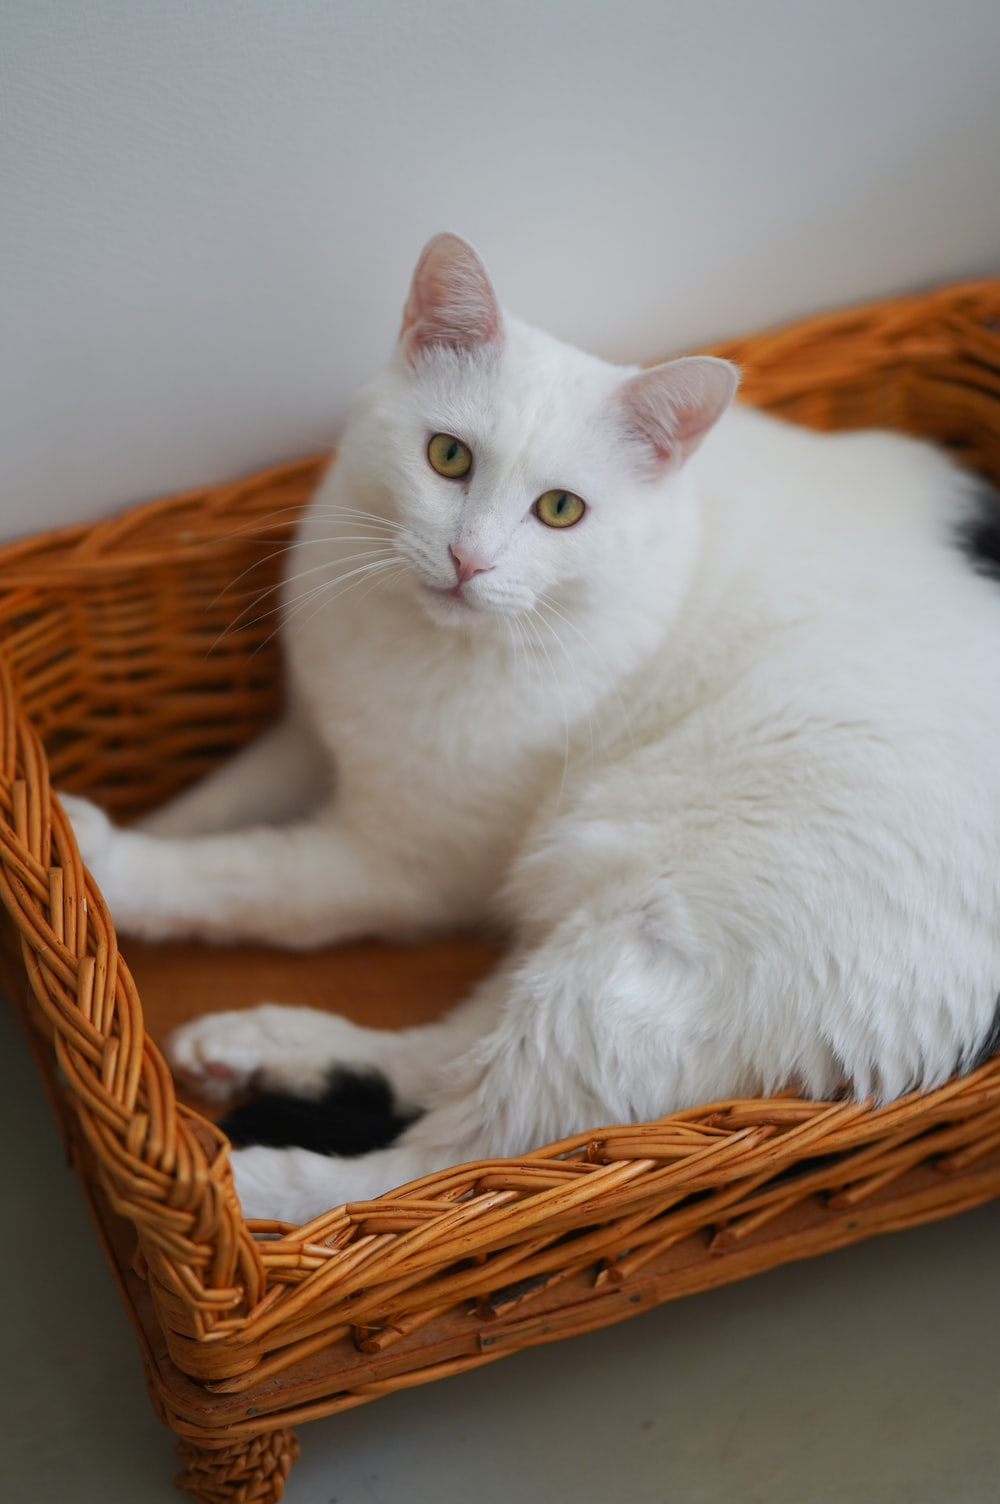 shallow focus photo of white cat lying on brown wicker tray